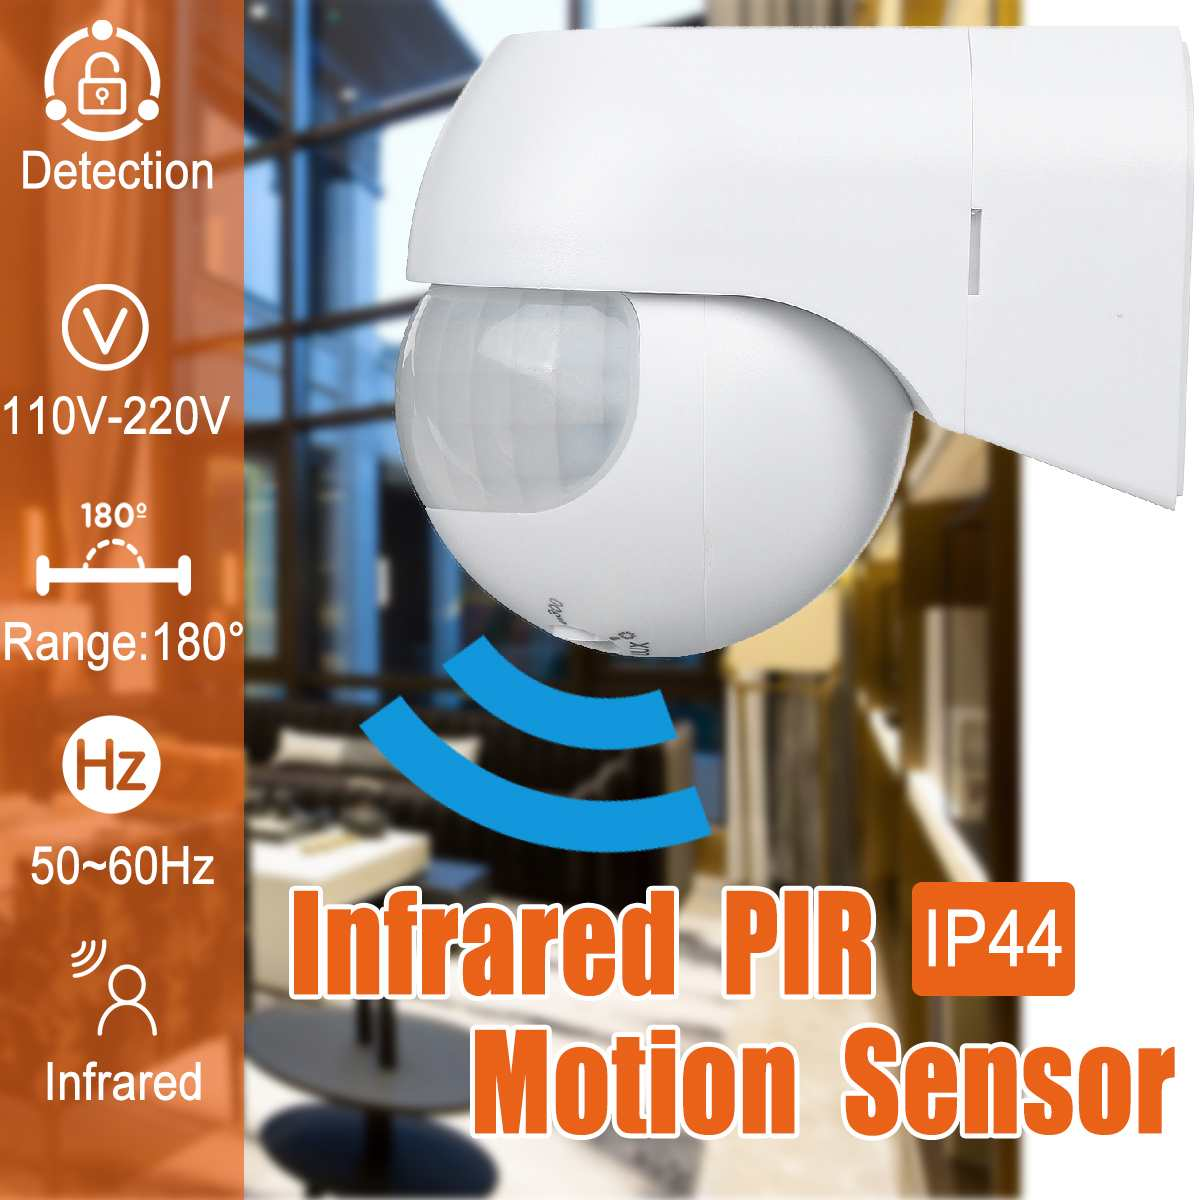 Infrared PIR Motion Sensor 180 Degree Adjustable Wireless Sensitive Alarm Detector 110V-220V Time Delay Home Security Outdoor